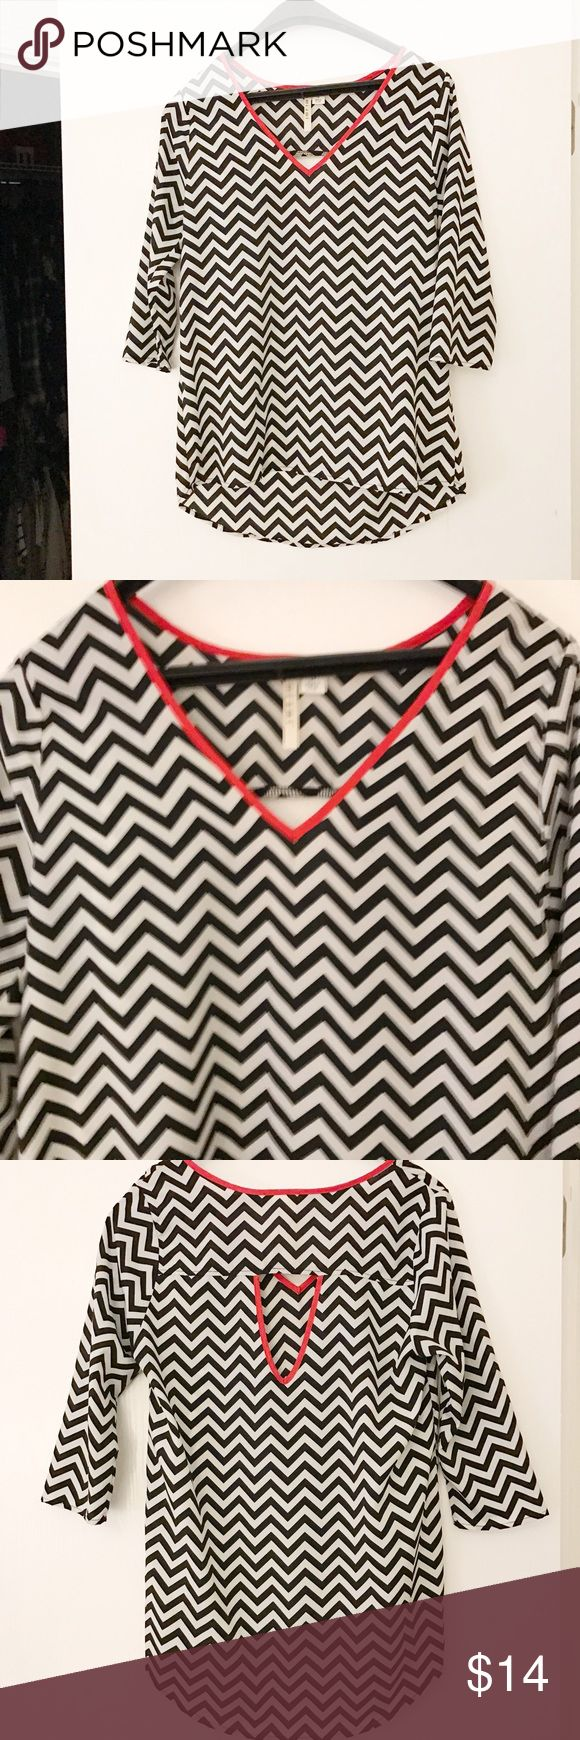 Francesca's Chevron Top size small Francesca's Chevron Top size small Francesca's Collections Tops Blouses